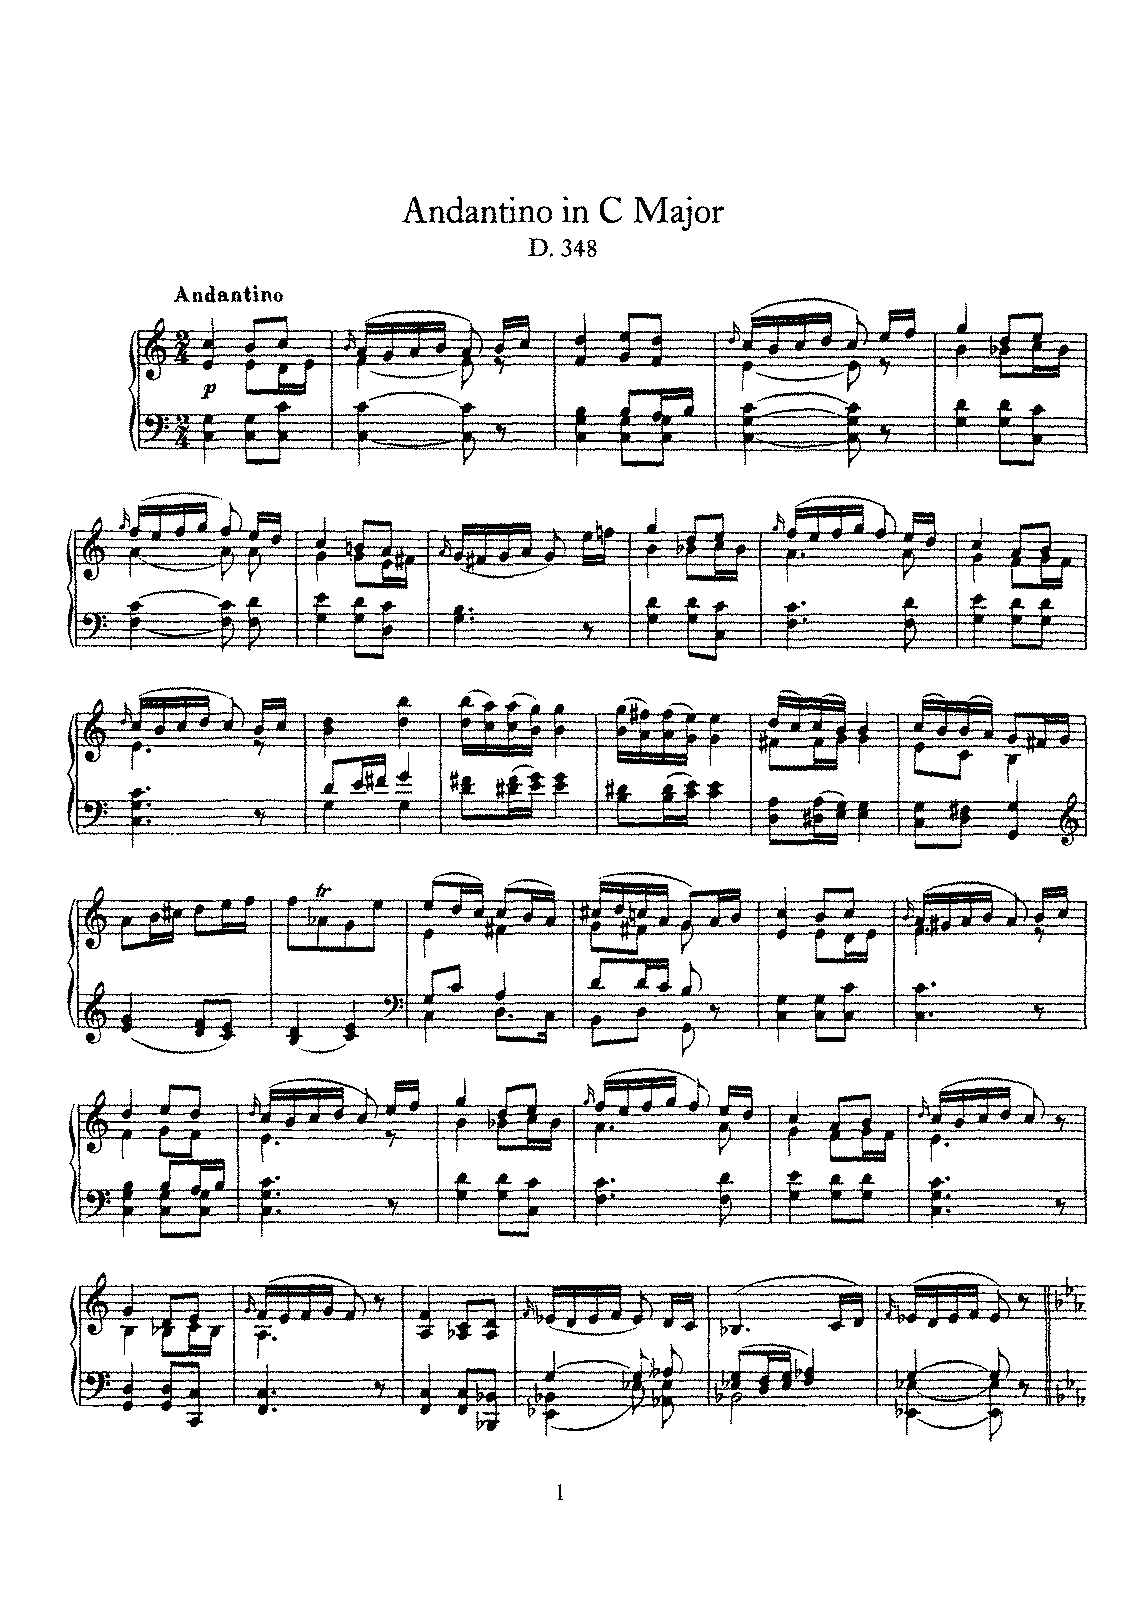 Schubert - D.348 - Andantino in C Major.pdf